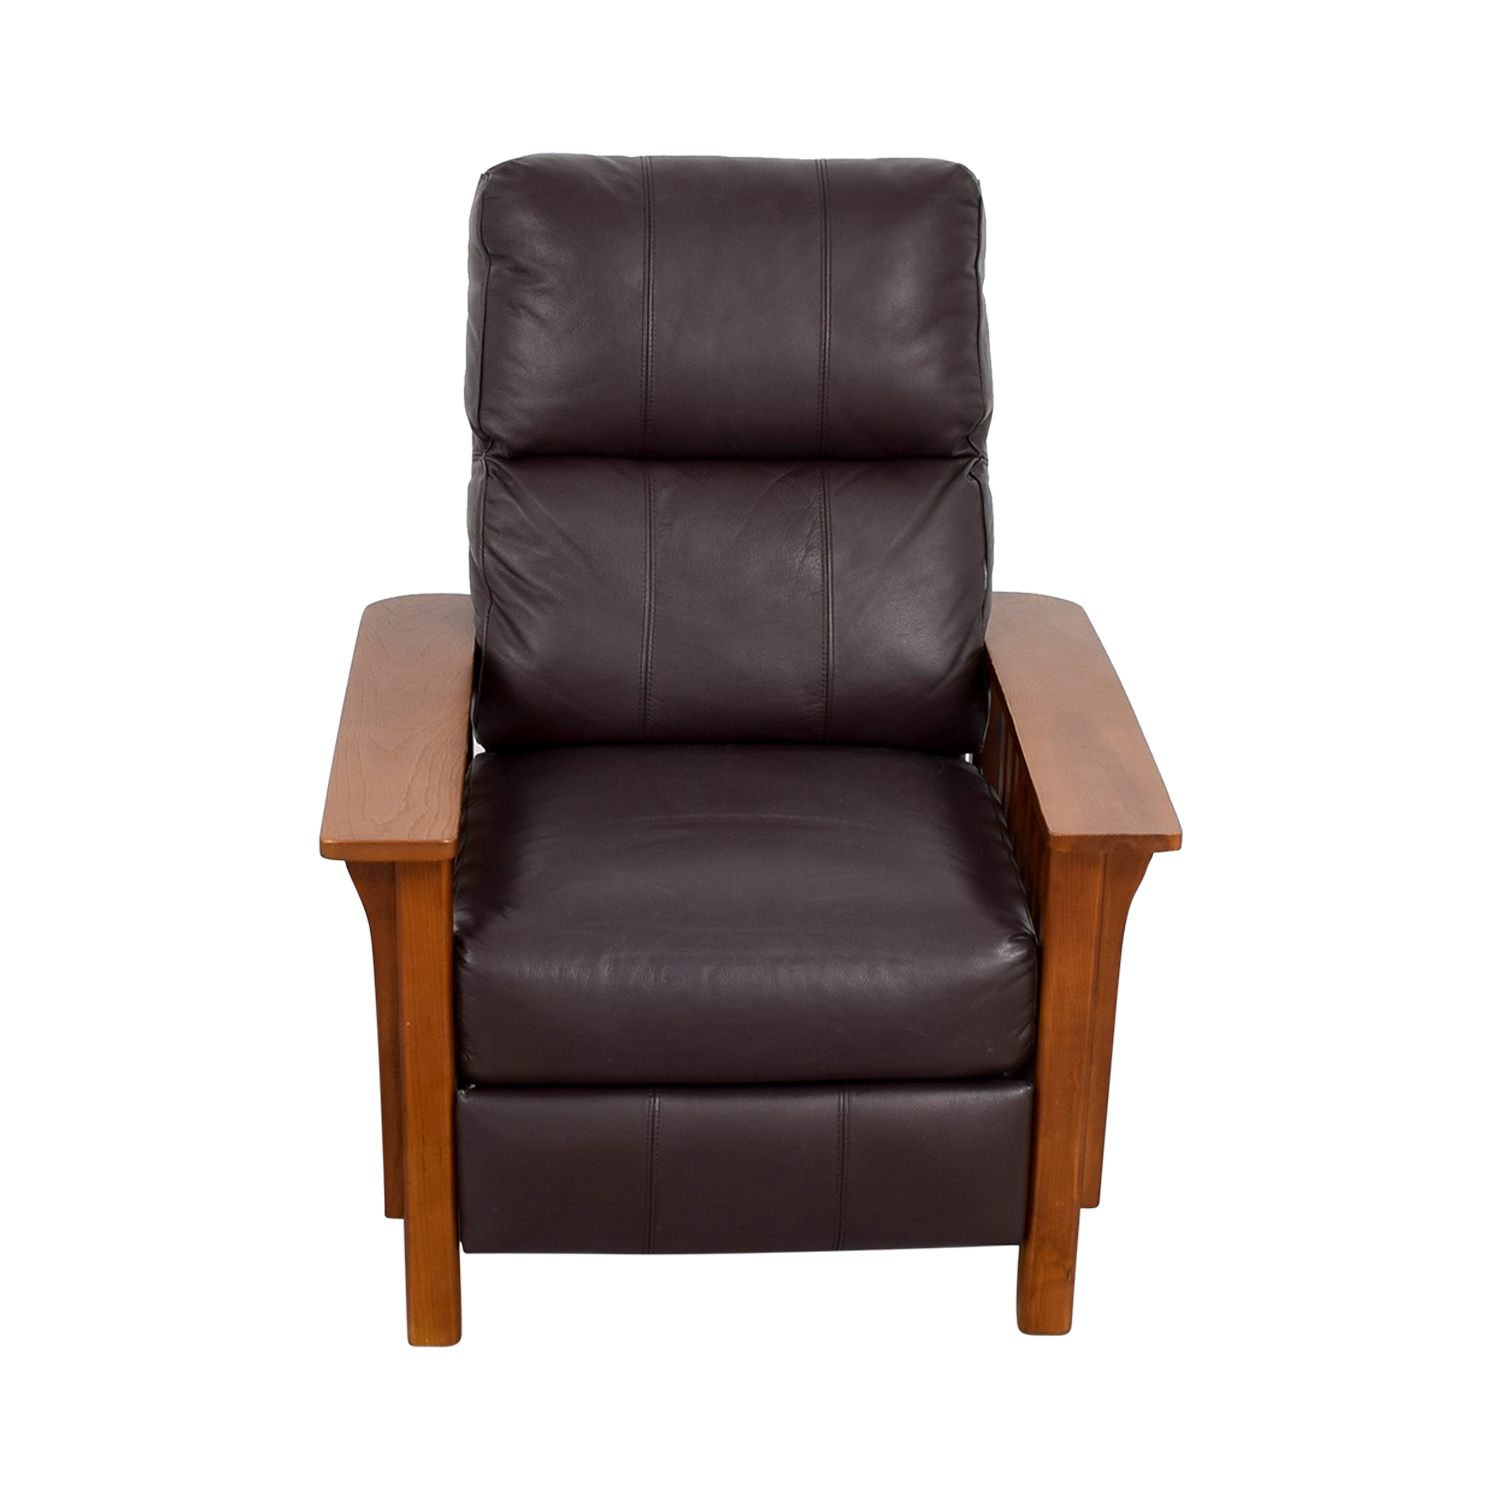 ... Macyu0027s Harrison Brown Leather Pushback Recliner / Recliners ...  sc 1 st  Furnishare & 47% OFF - Macyu0027s Macyu0027s Harrison Brown Leather Pushback Recliner ... islam-shia.org